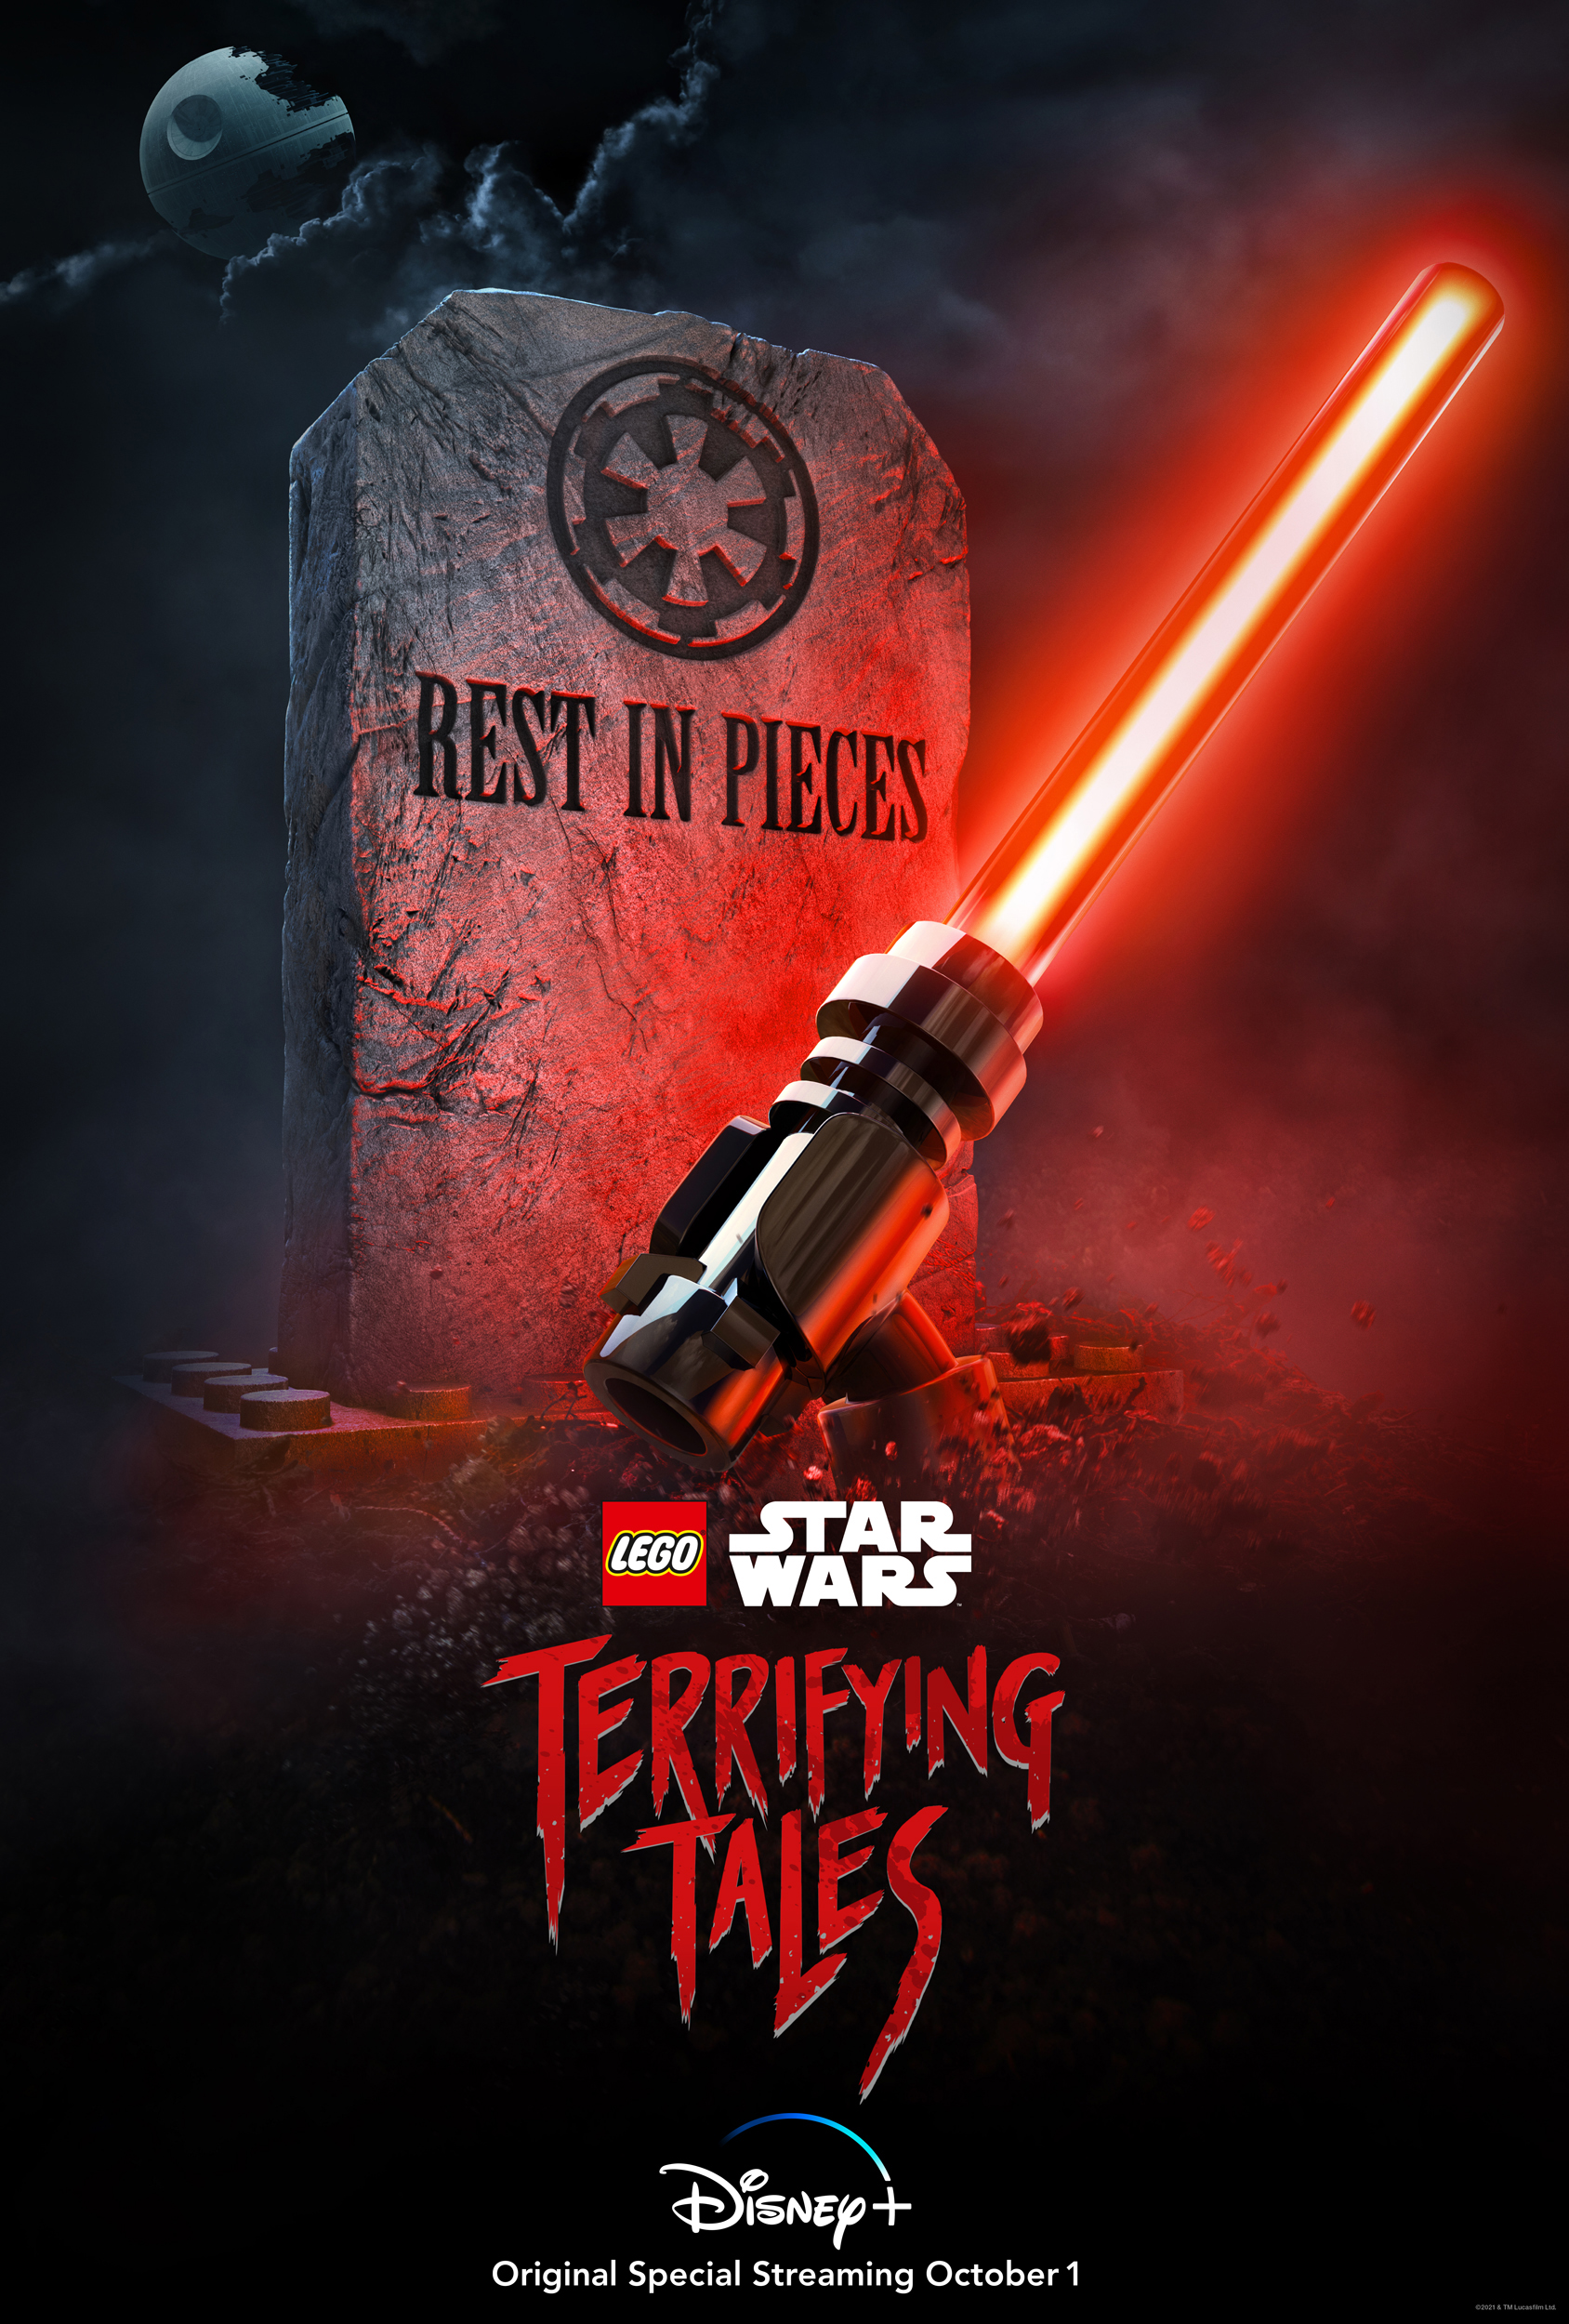 The poster for the Lego Star Wars Halloween special